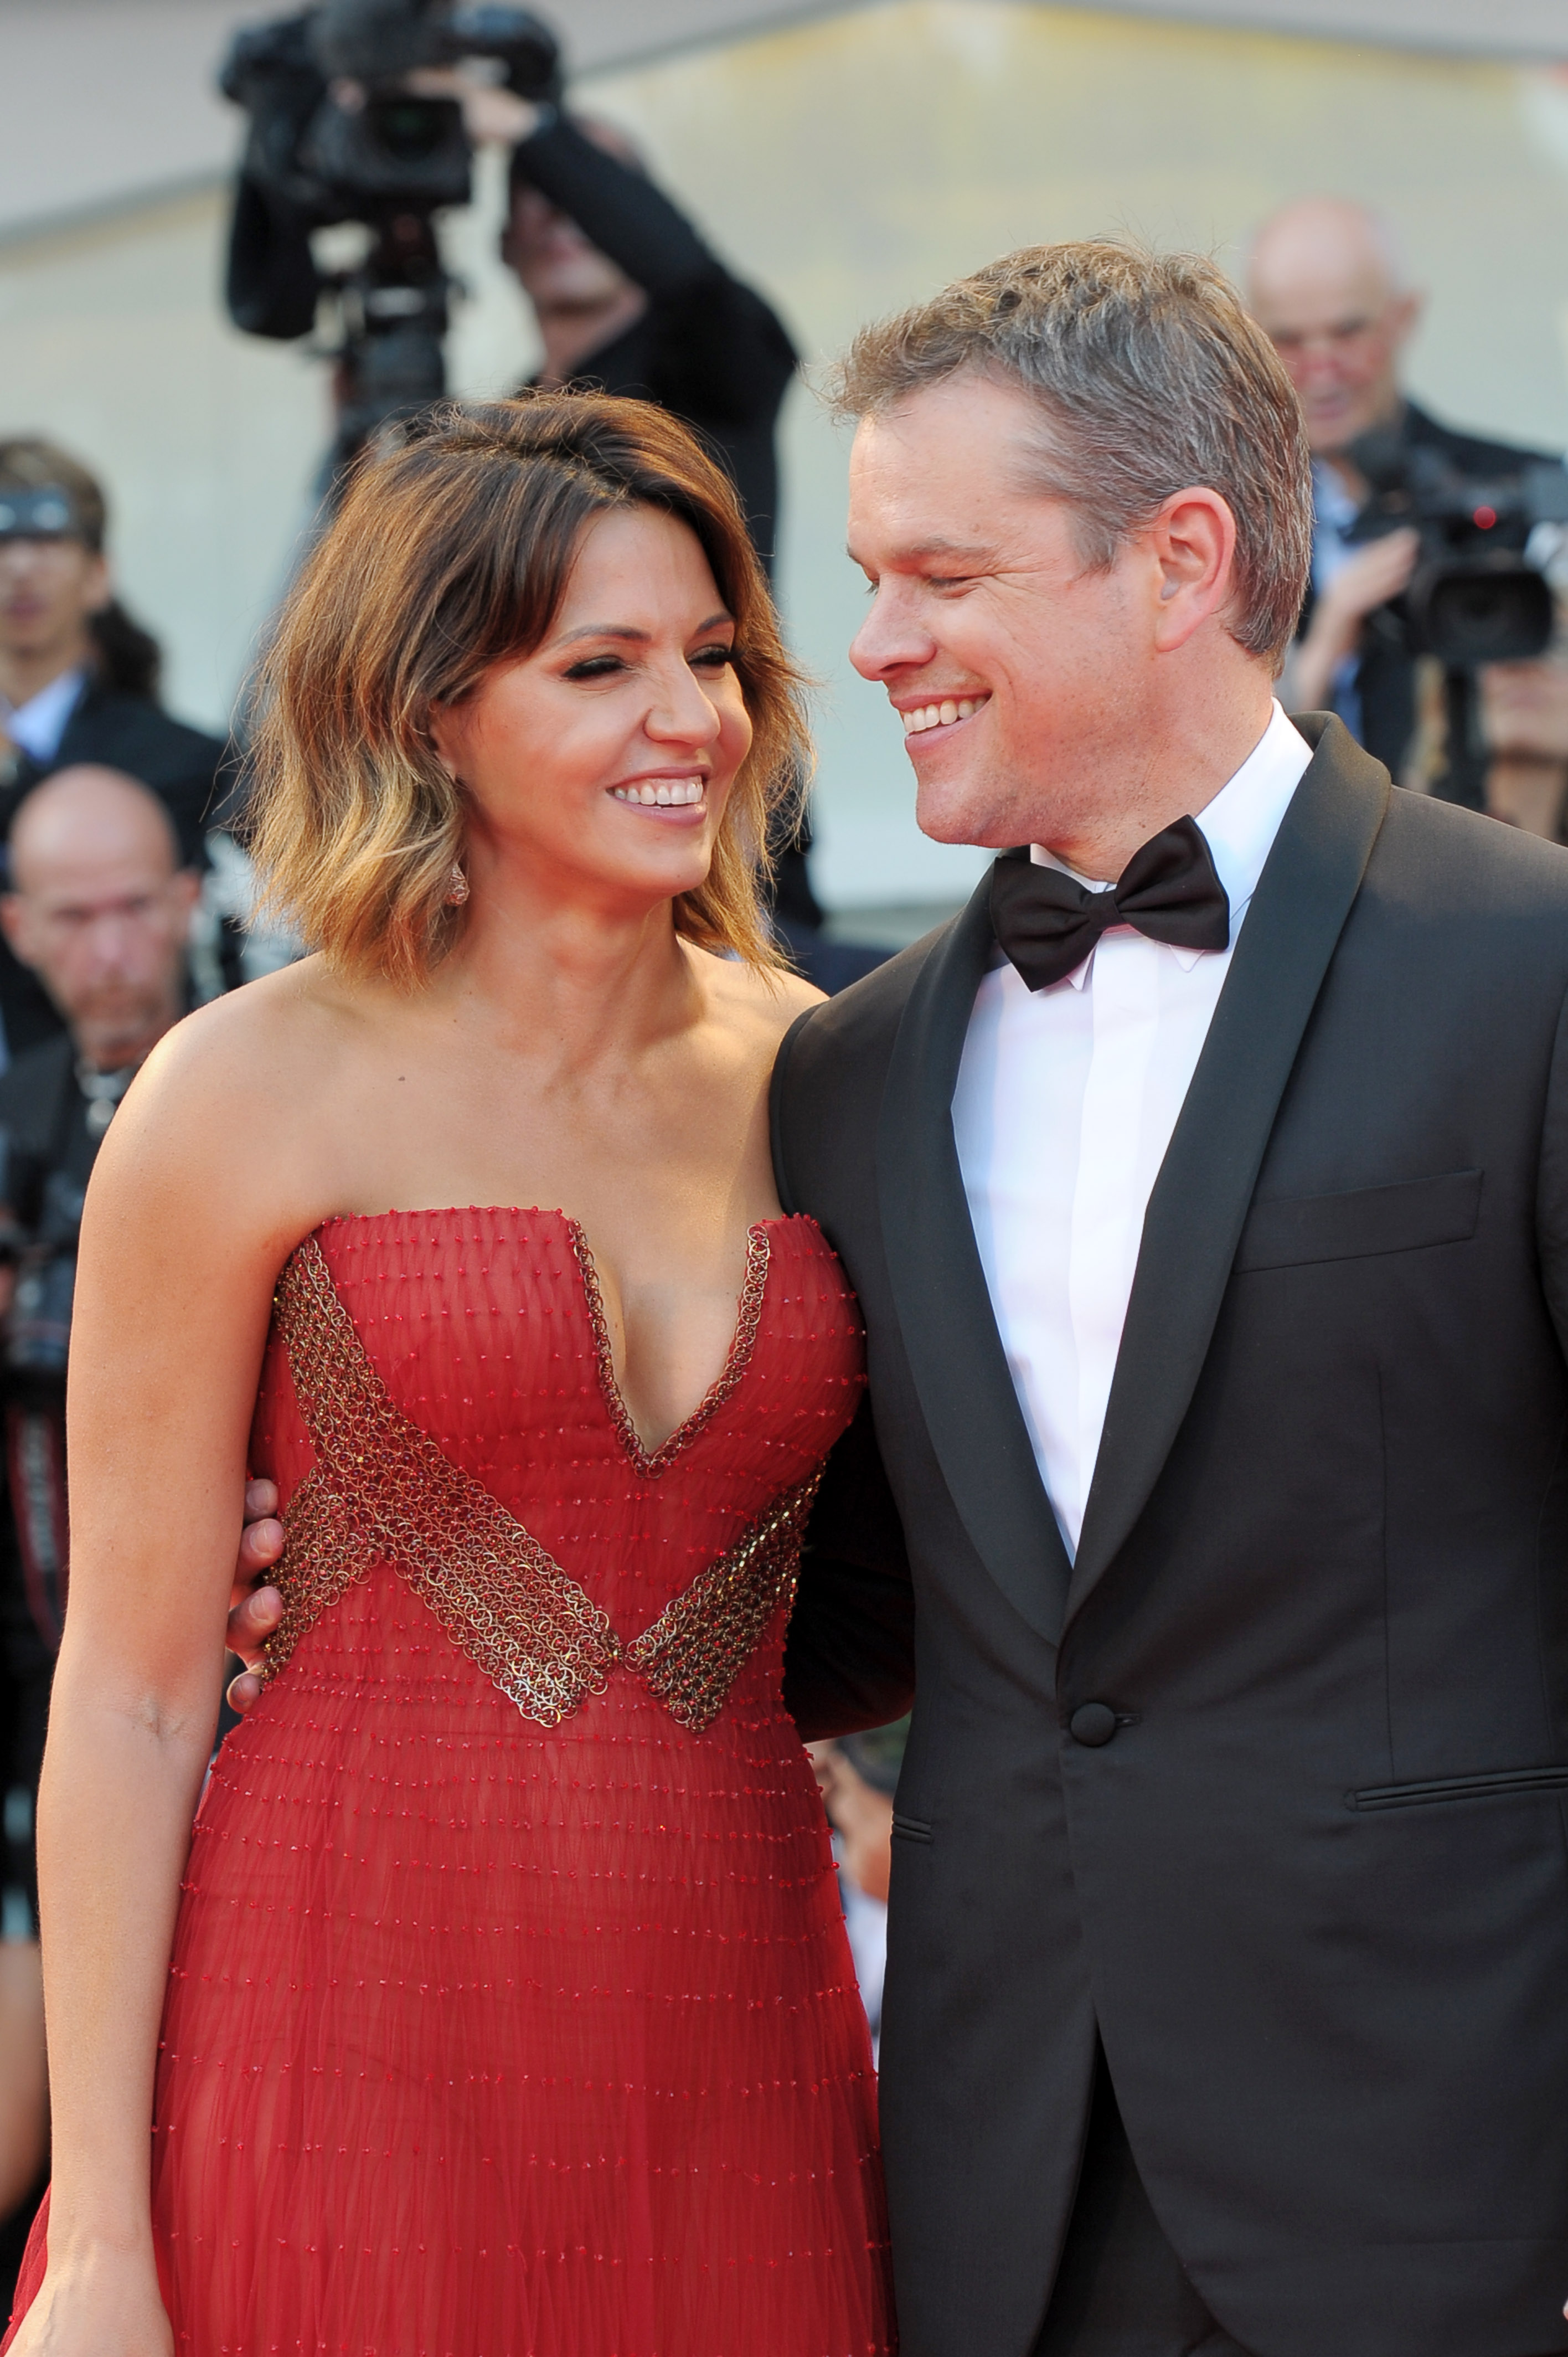 Celebrities on the red carpet for the premiere of 'Downsizing' held during the 74th Venice Film Festival in Venice, Italy. <P> Pictured: Matt Damon, Luciana Barroso <B>Ref: SPL1565300  300817  </B><BR/> Picture by: Splash News<BR/> </P><P> <B>Splash News and Pictures</B><BR/> Los Angeles:	310-821-2666<BR/> New York:	212-619-2666<BR/> London:	870-934-2666<BR/> <span id=